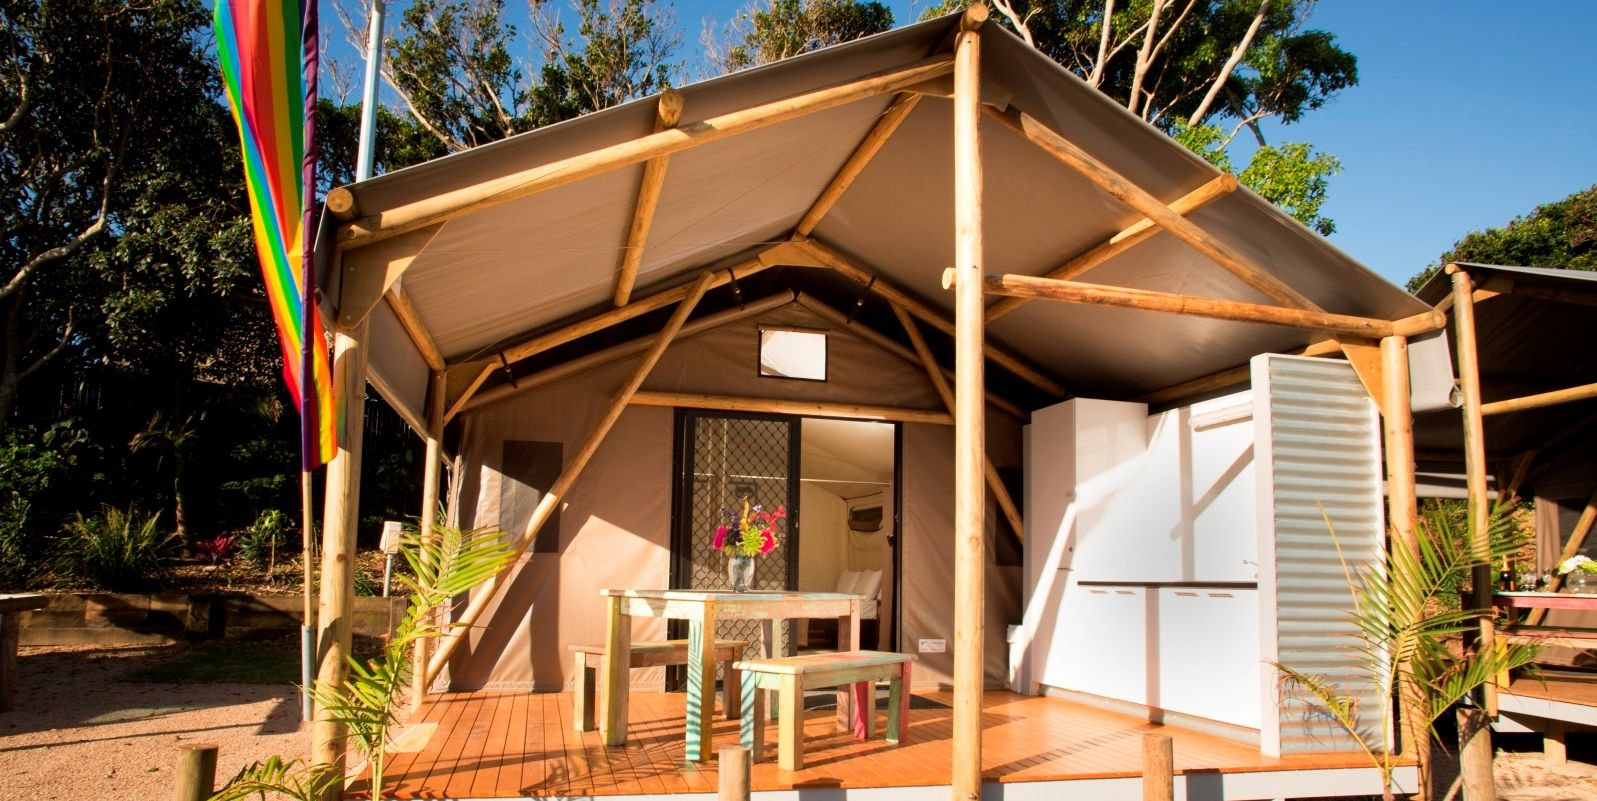 Are you looking for Safari Tents for Sale in QLD u0026 NSW? Undercover Safari Tents are leaders in Permanent Gl&ing Tents in Australia. & These Koppers Log Canvas Safari Tents are seriously impressive ...